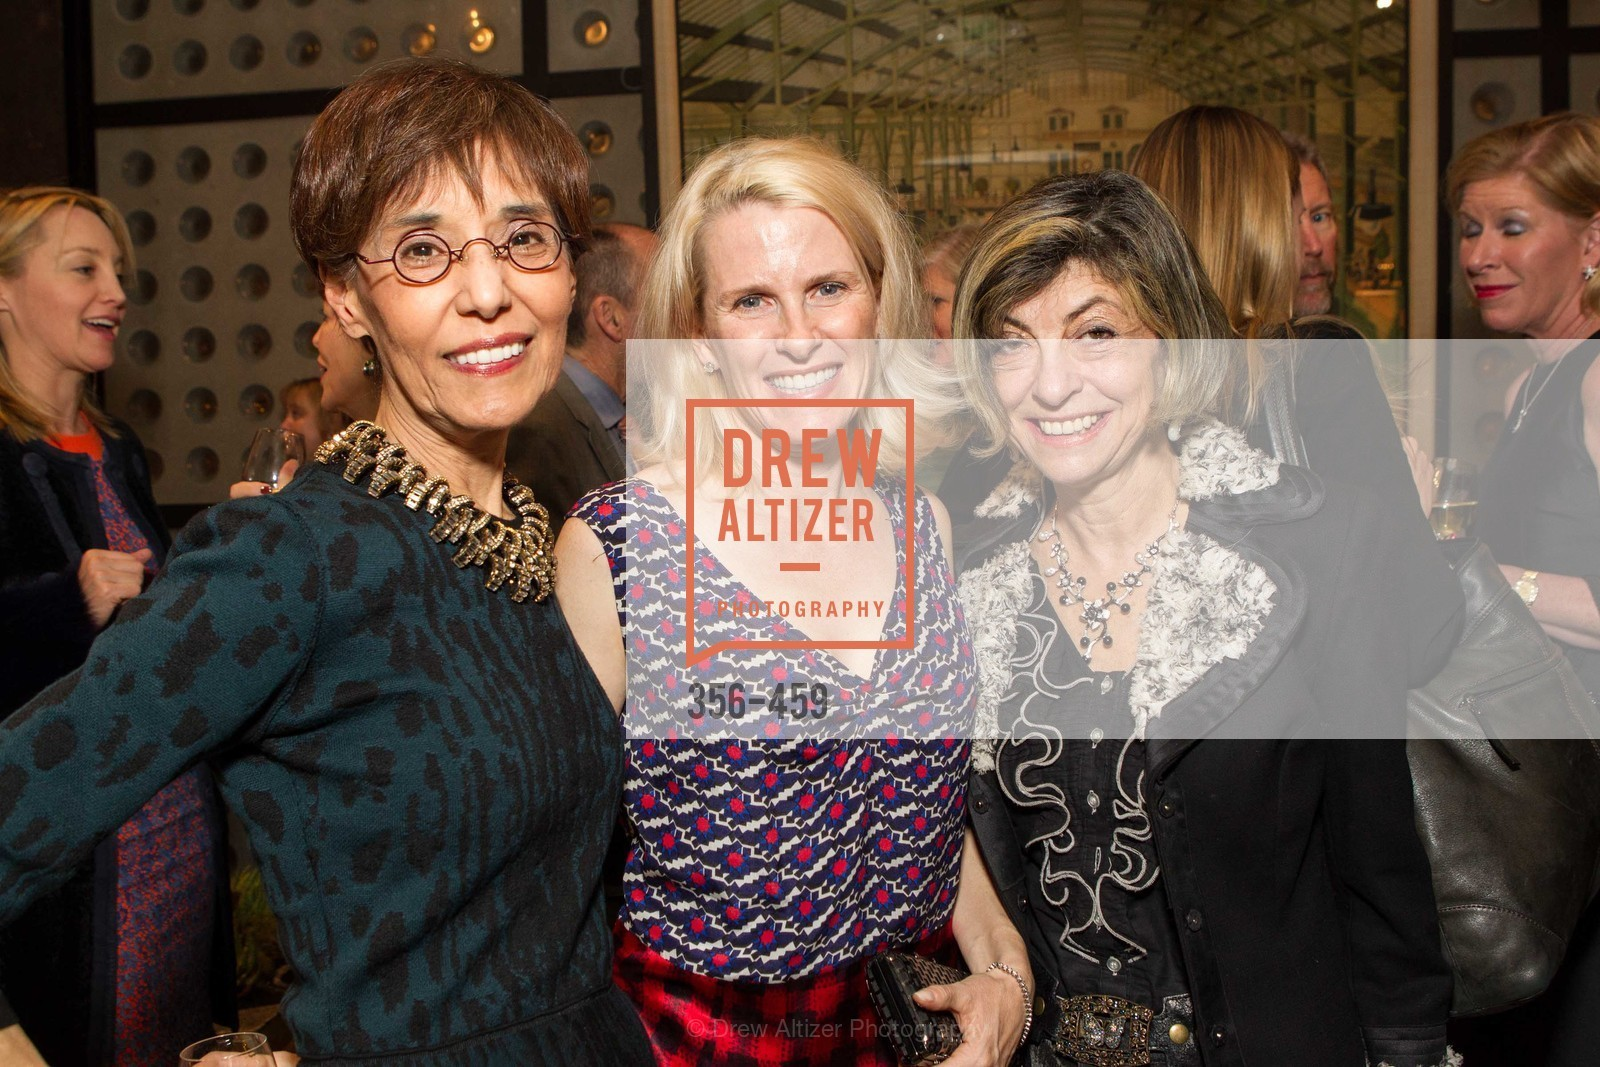 Beatrce Wood, Marie Hurabiell, Ludmila Eggleton, 2014 SAN FRANCISCO BALLET OPENING NIGHT GALA Patron and Sponsor Reception, US. US, January 14th, 2014,Drew Altizer, Drew Altizer Photography, full-service agency, private events, San Francisco photographer, photographer california